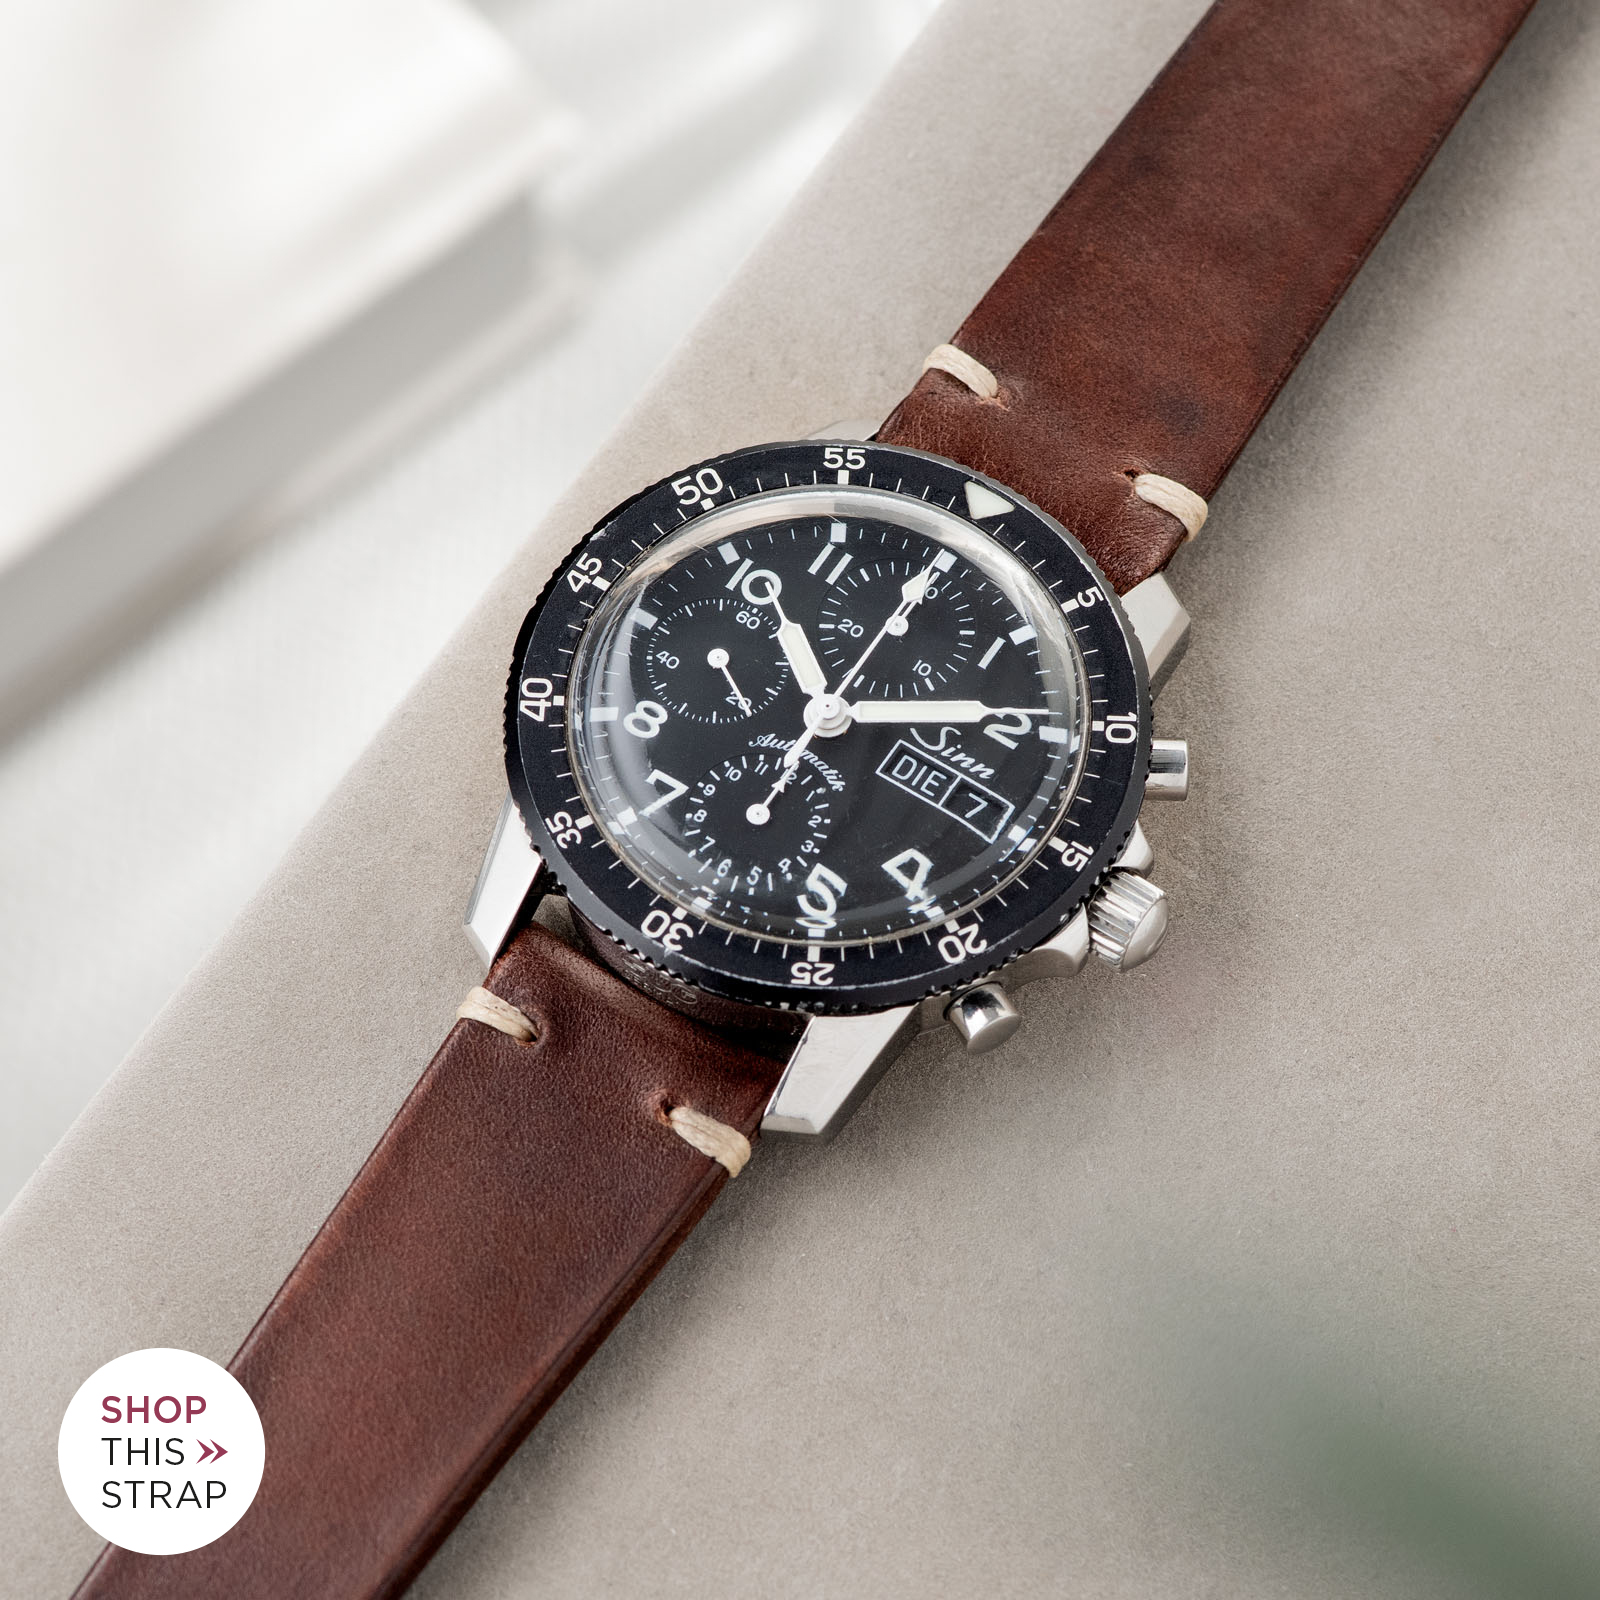 Bulang and Sons_Strap Guide_Sinn 103_Lumberjack Brown Leather Watch Strap